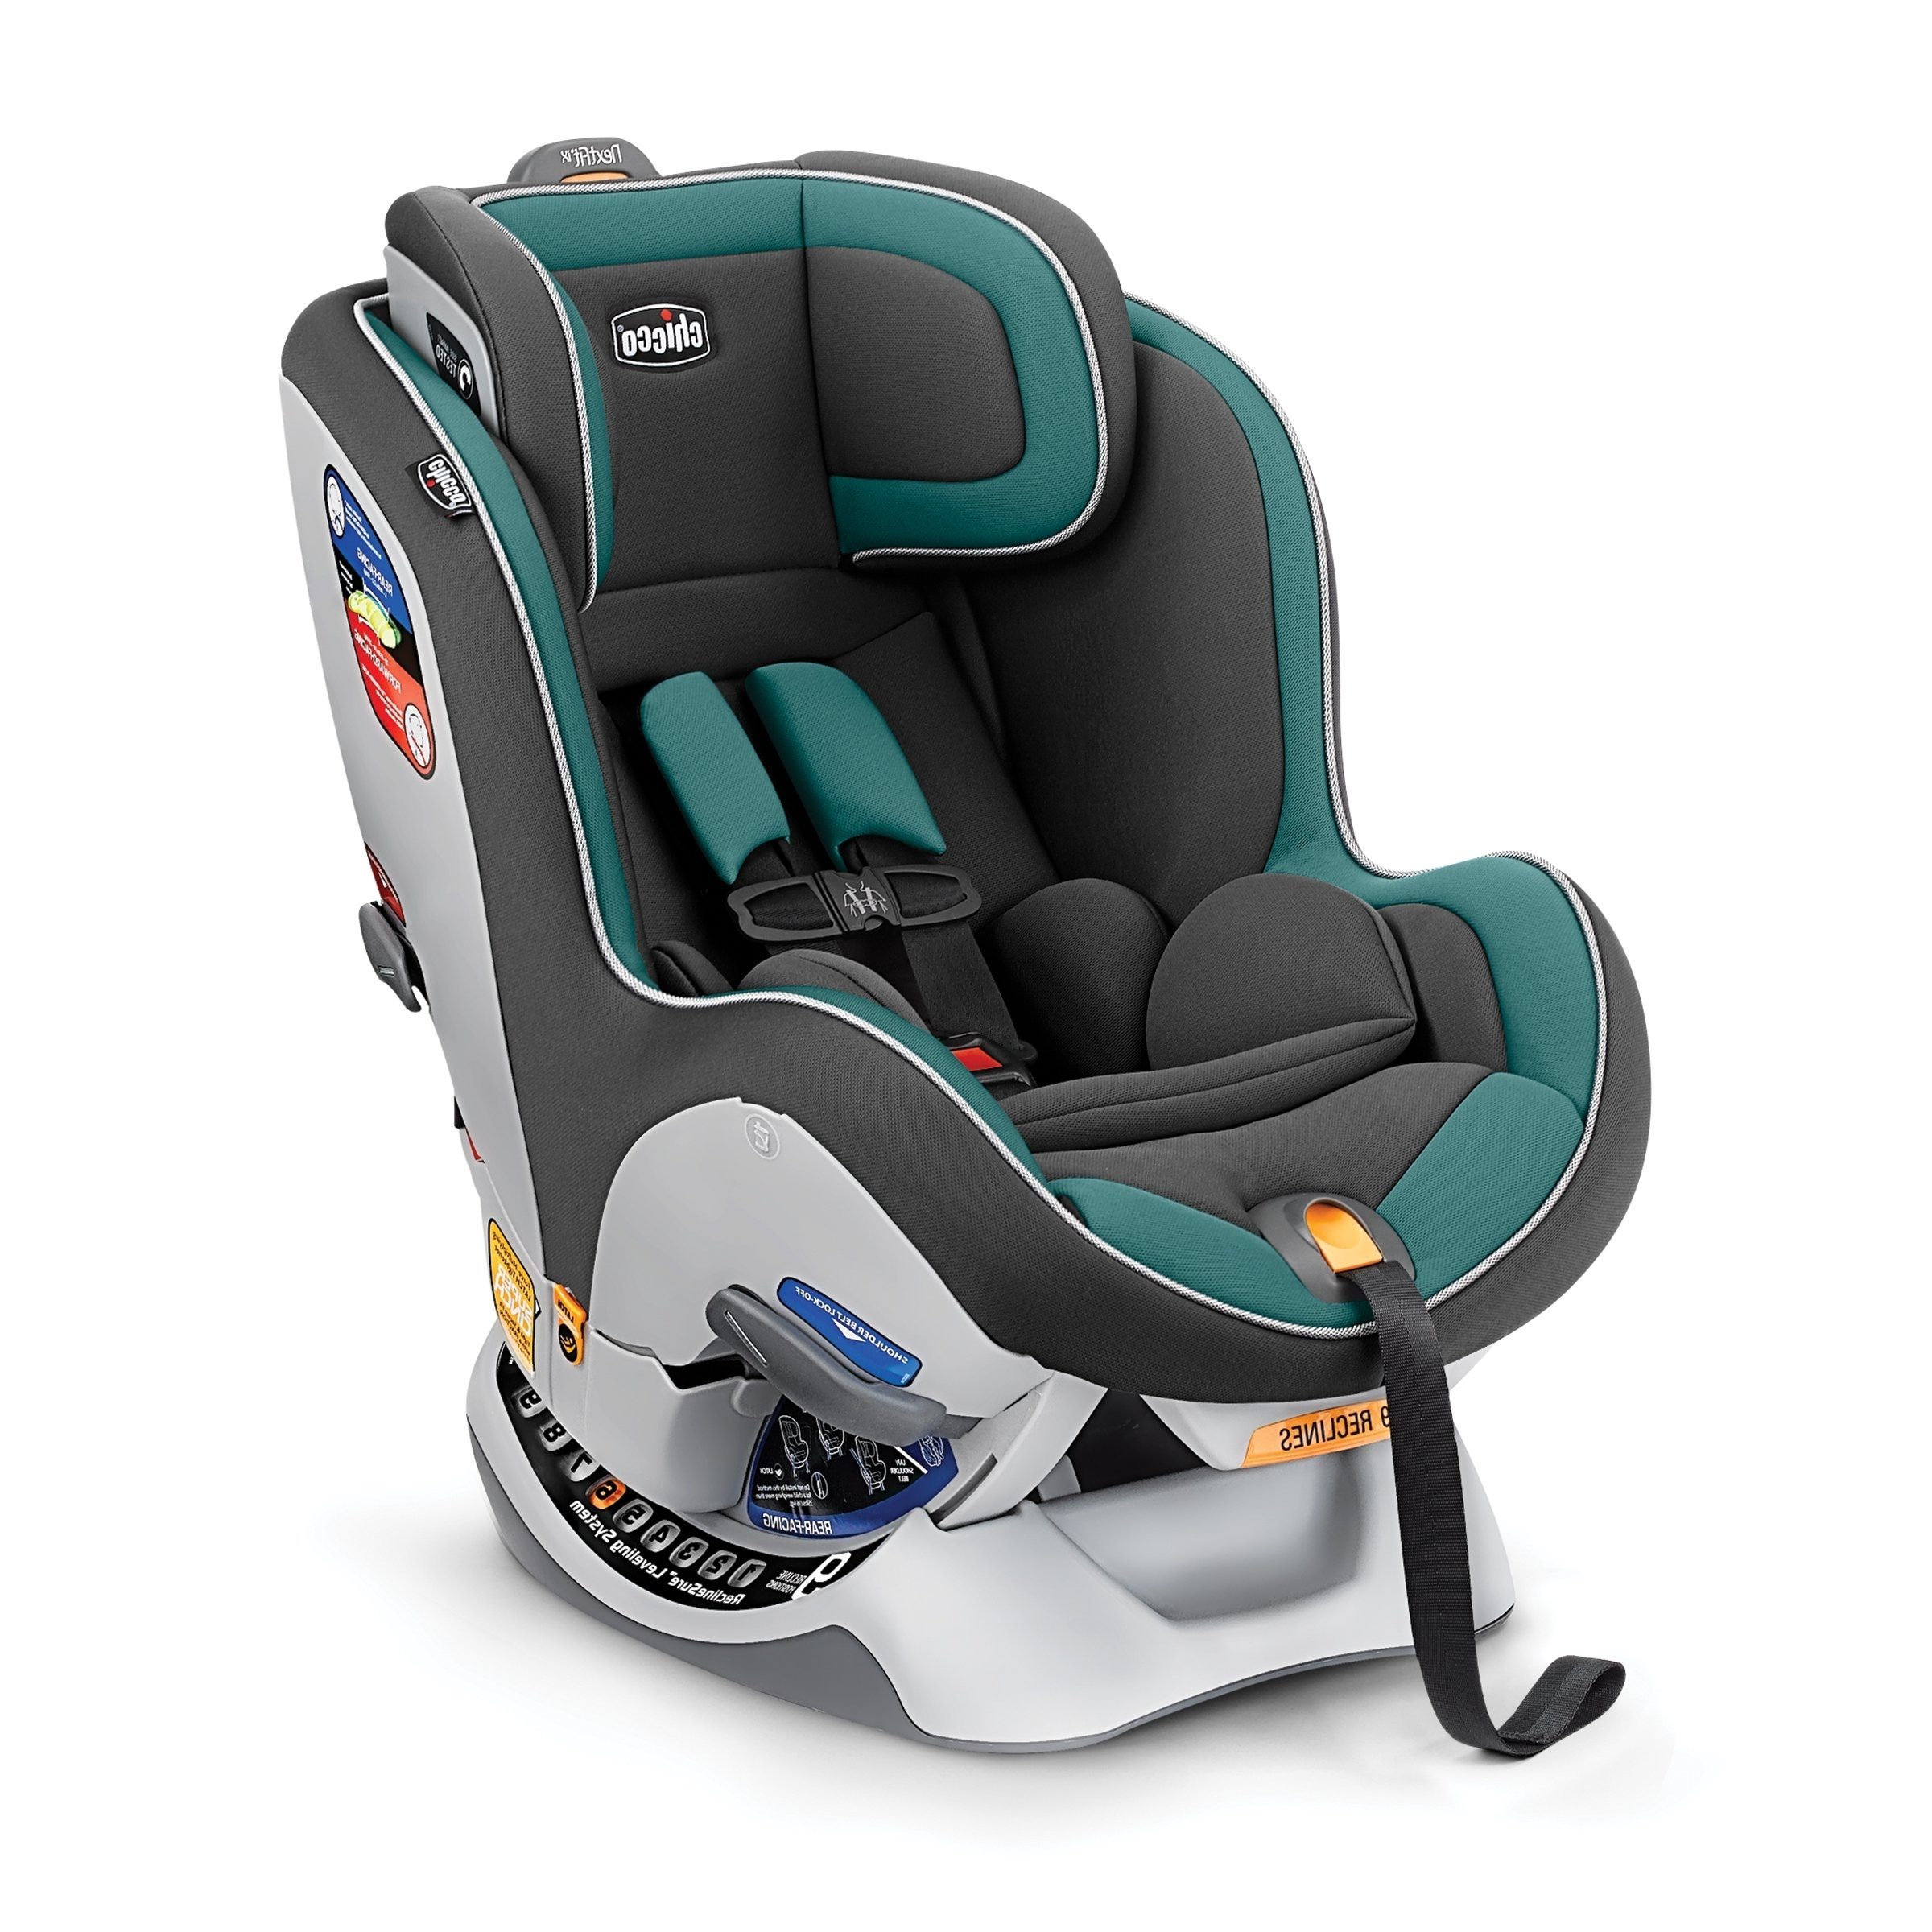 Alexa Firecracker Side Chairs Inside Well Known Amazon : Chicco Nextfit Ix Convertible Car Seat, Firecracker : Baby (View 3 of 20)